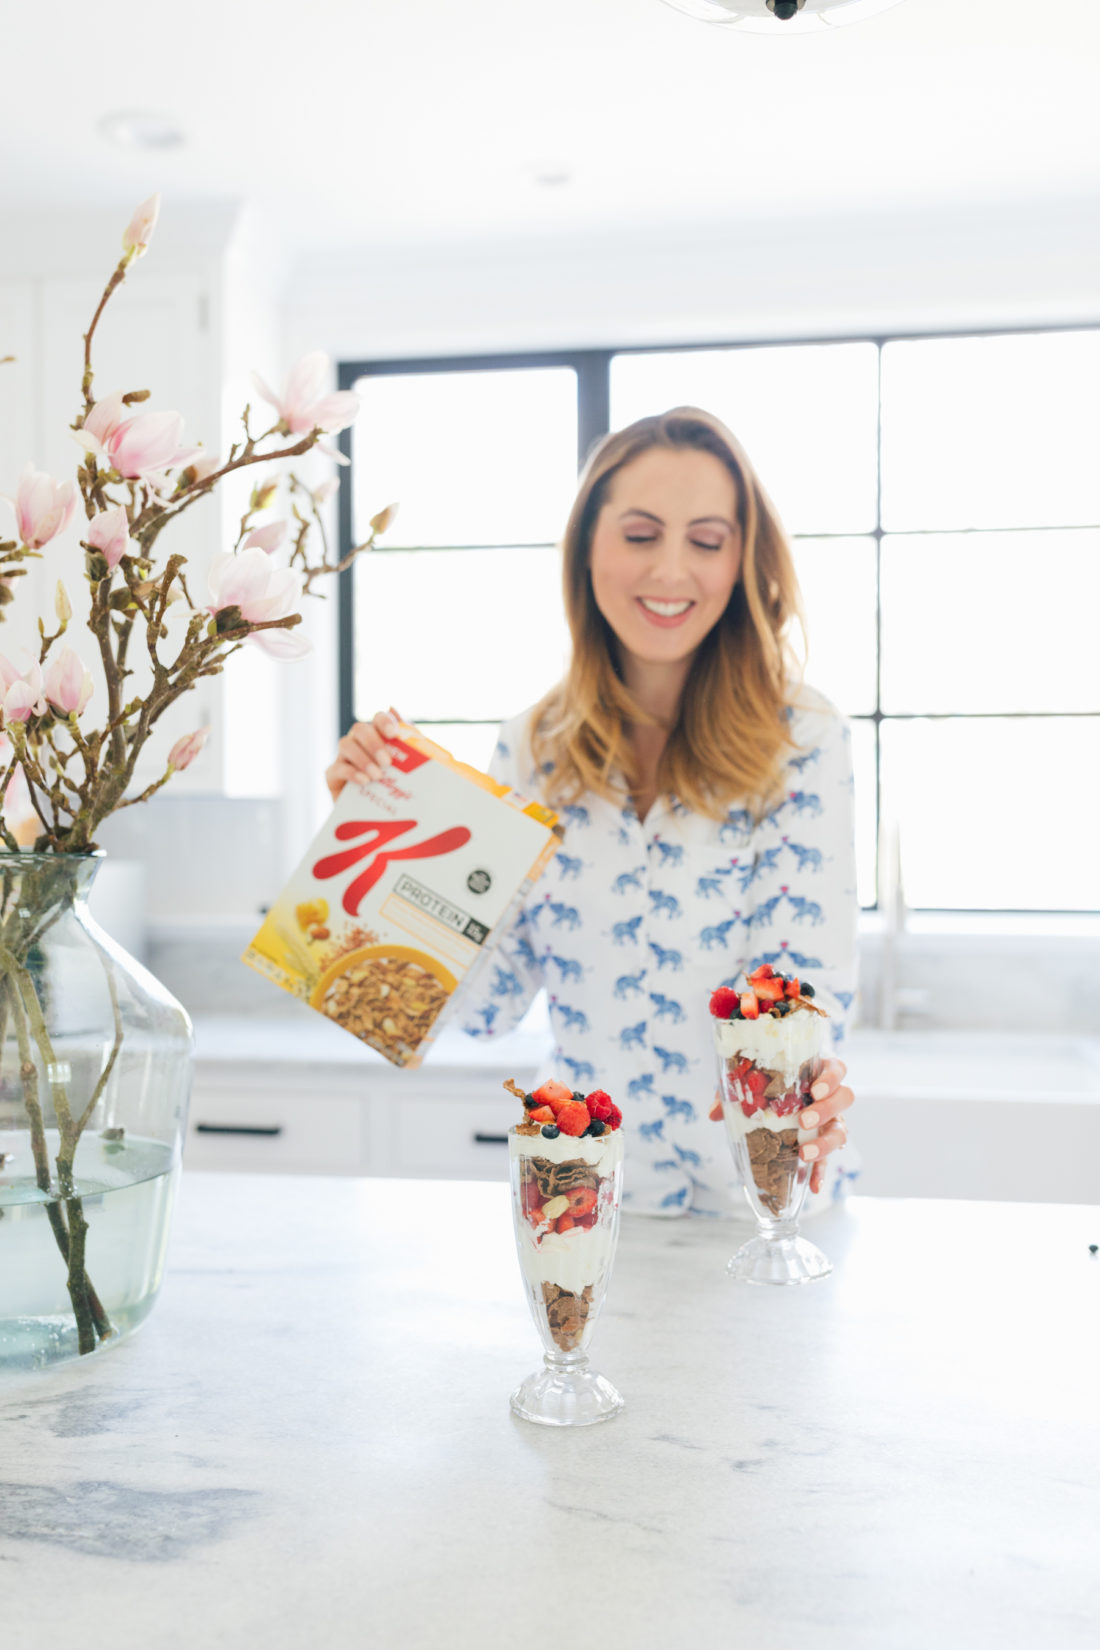 Eva Amurri Martino of Happily Eva After makes Yogurt Parfaits with Special K Ancient Grains